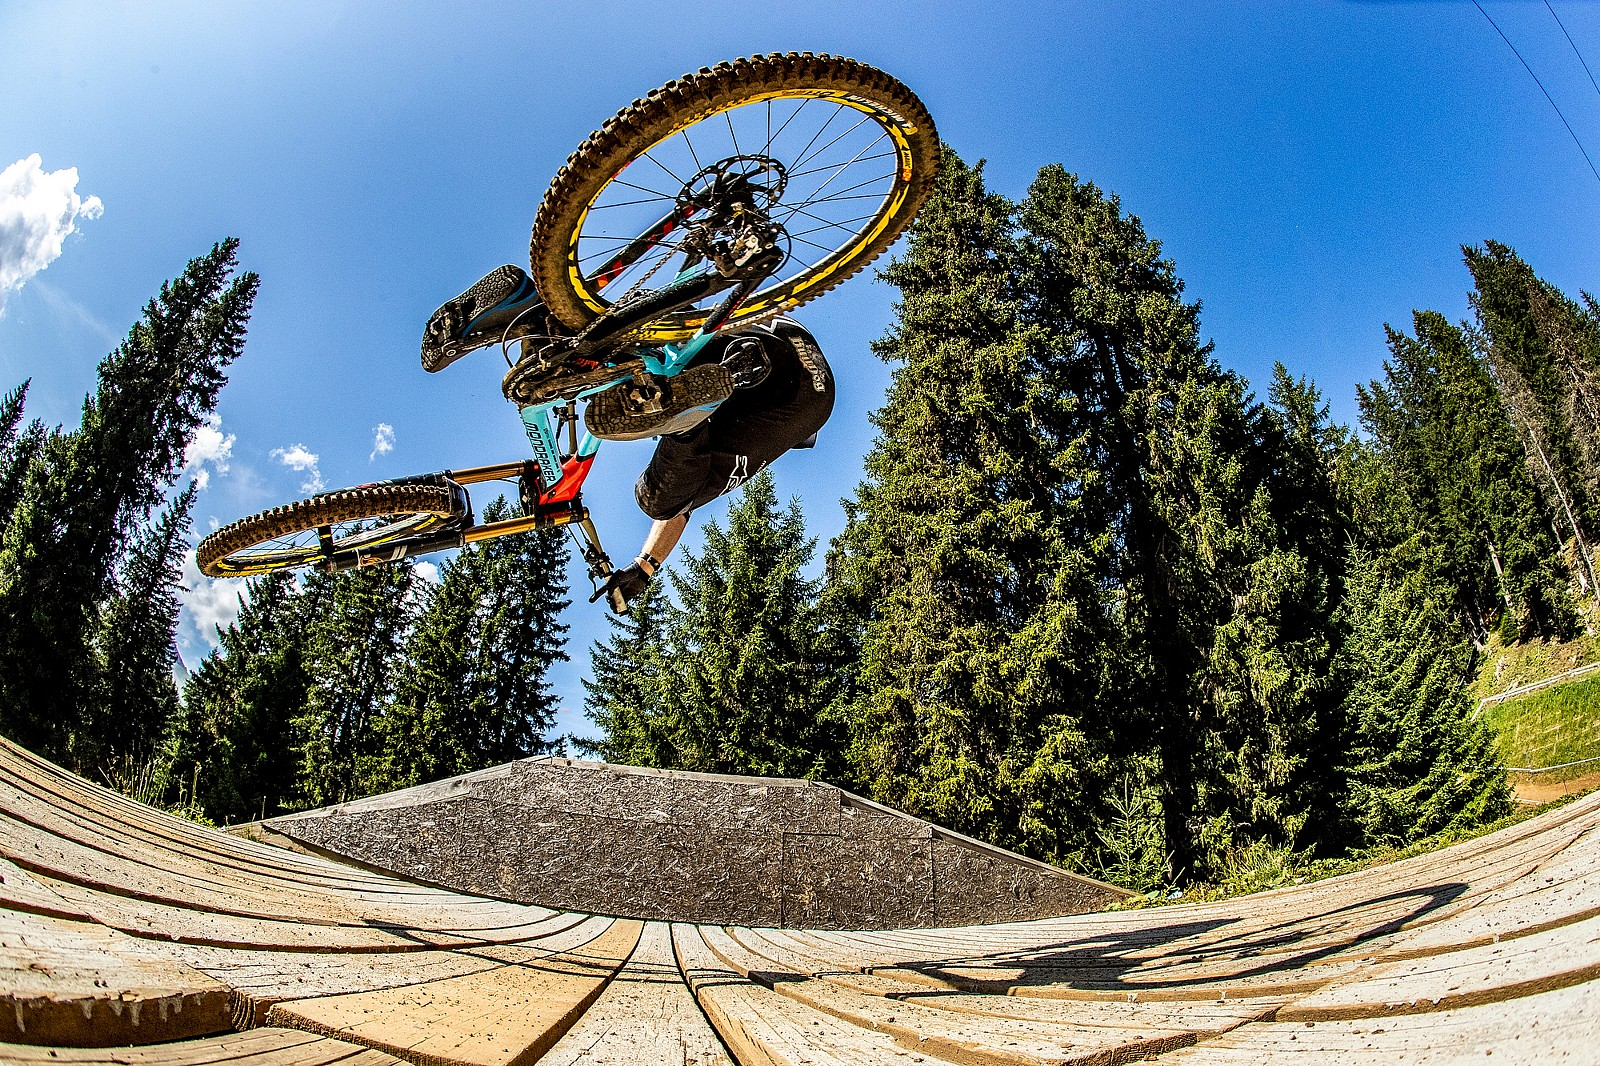 Bulldogs Fly Low - Brook Macdonald - A Big Bad Batch of Brook Macdonald Bangers - Mountain Biking Pictures - Vital MTB